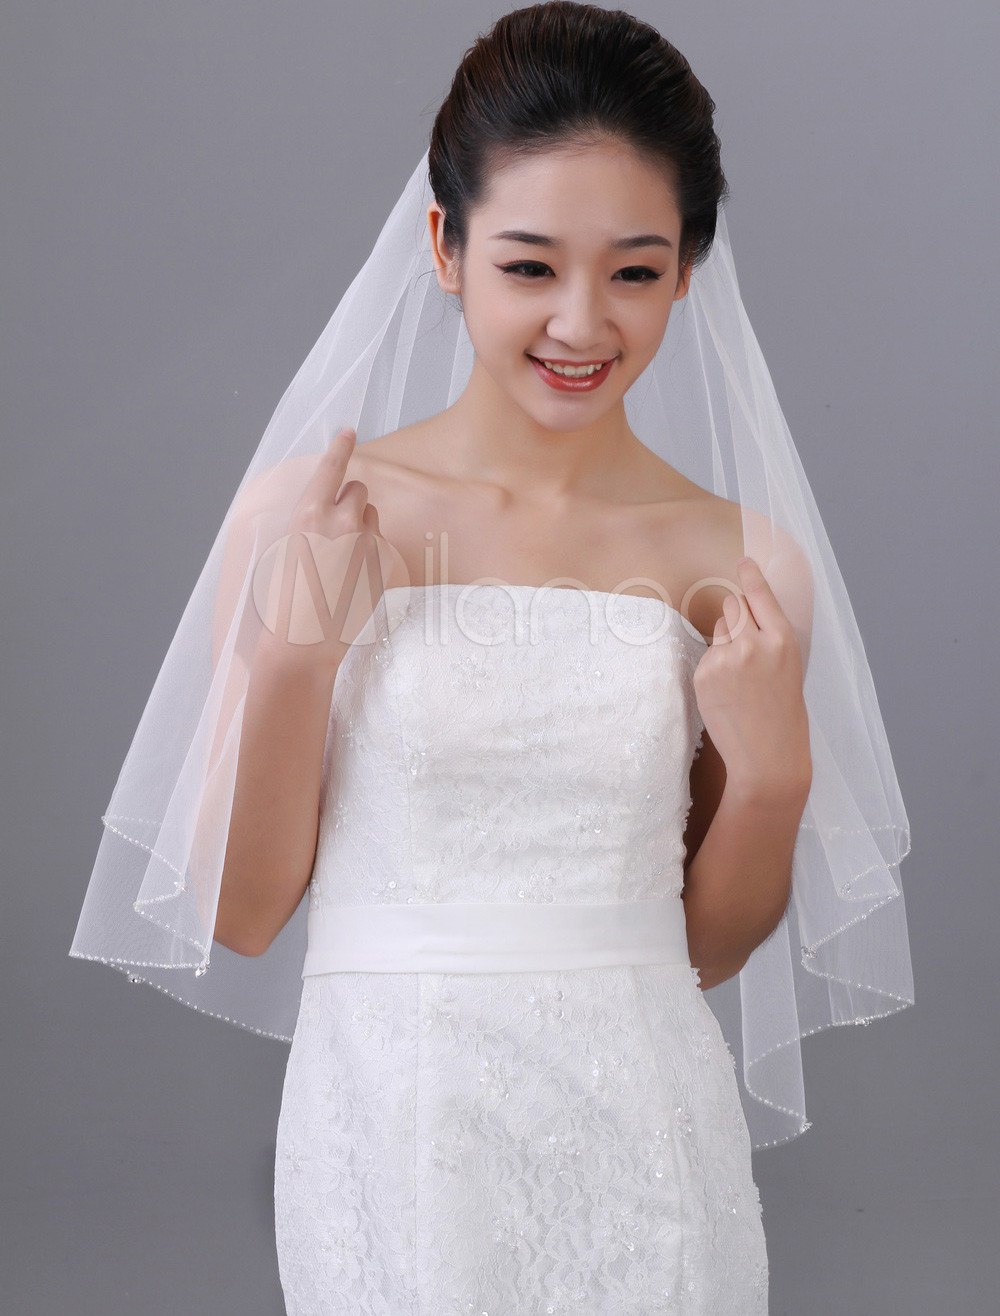 White One-Tier Beading Tulle Oval Bridal Wedding Veil